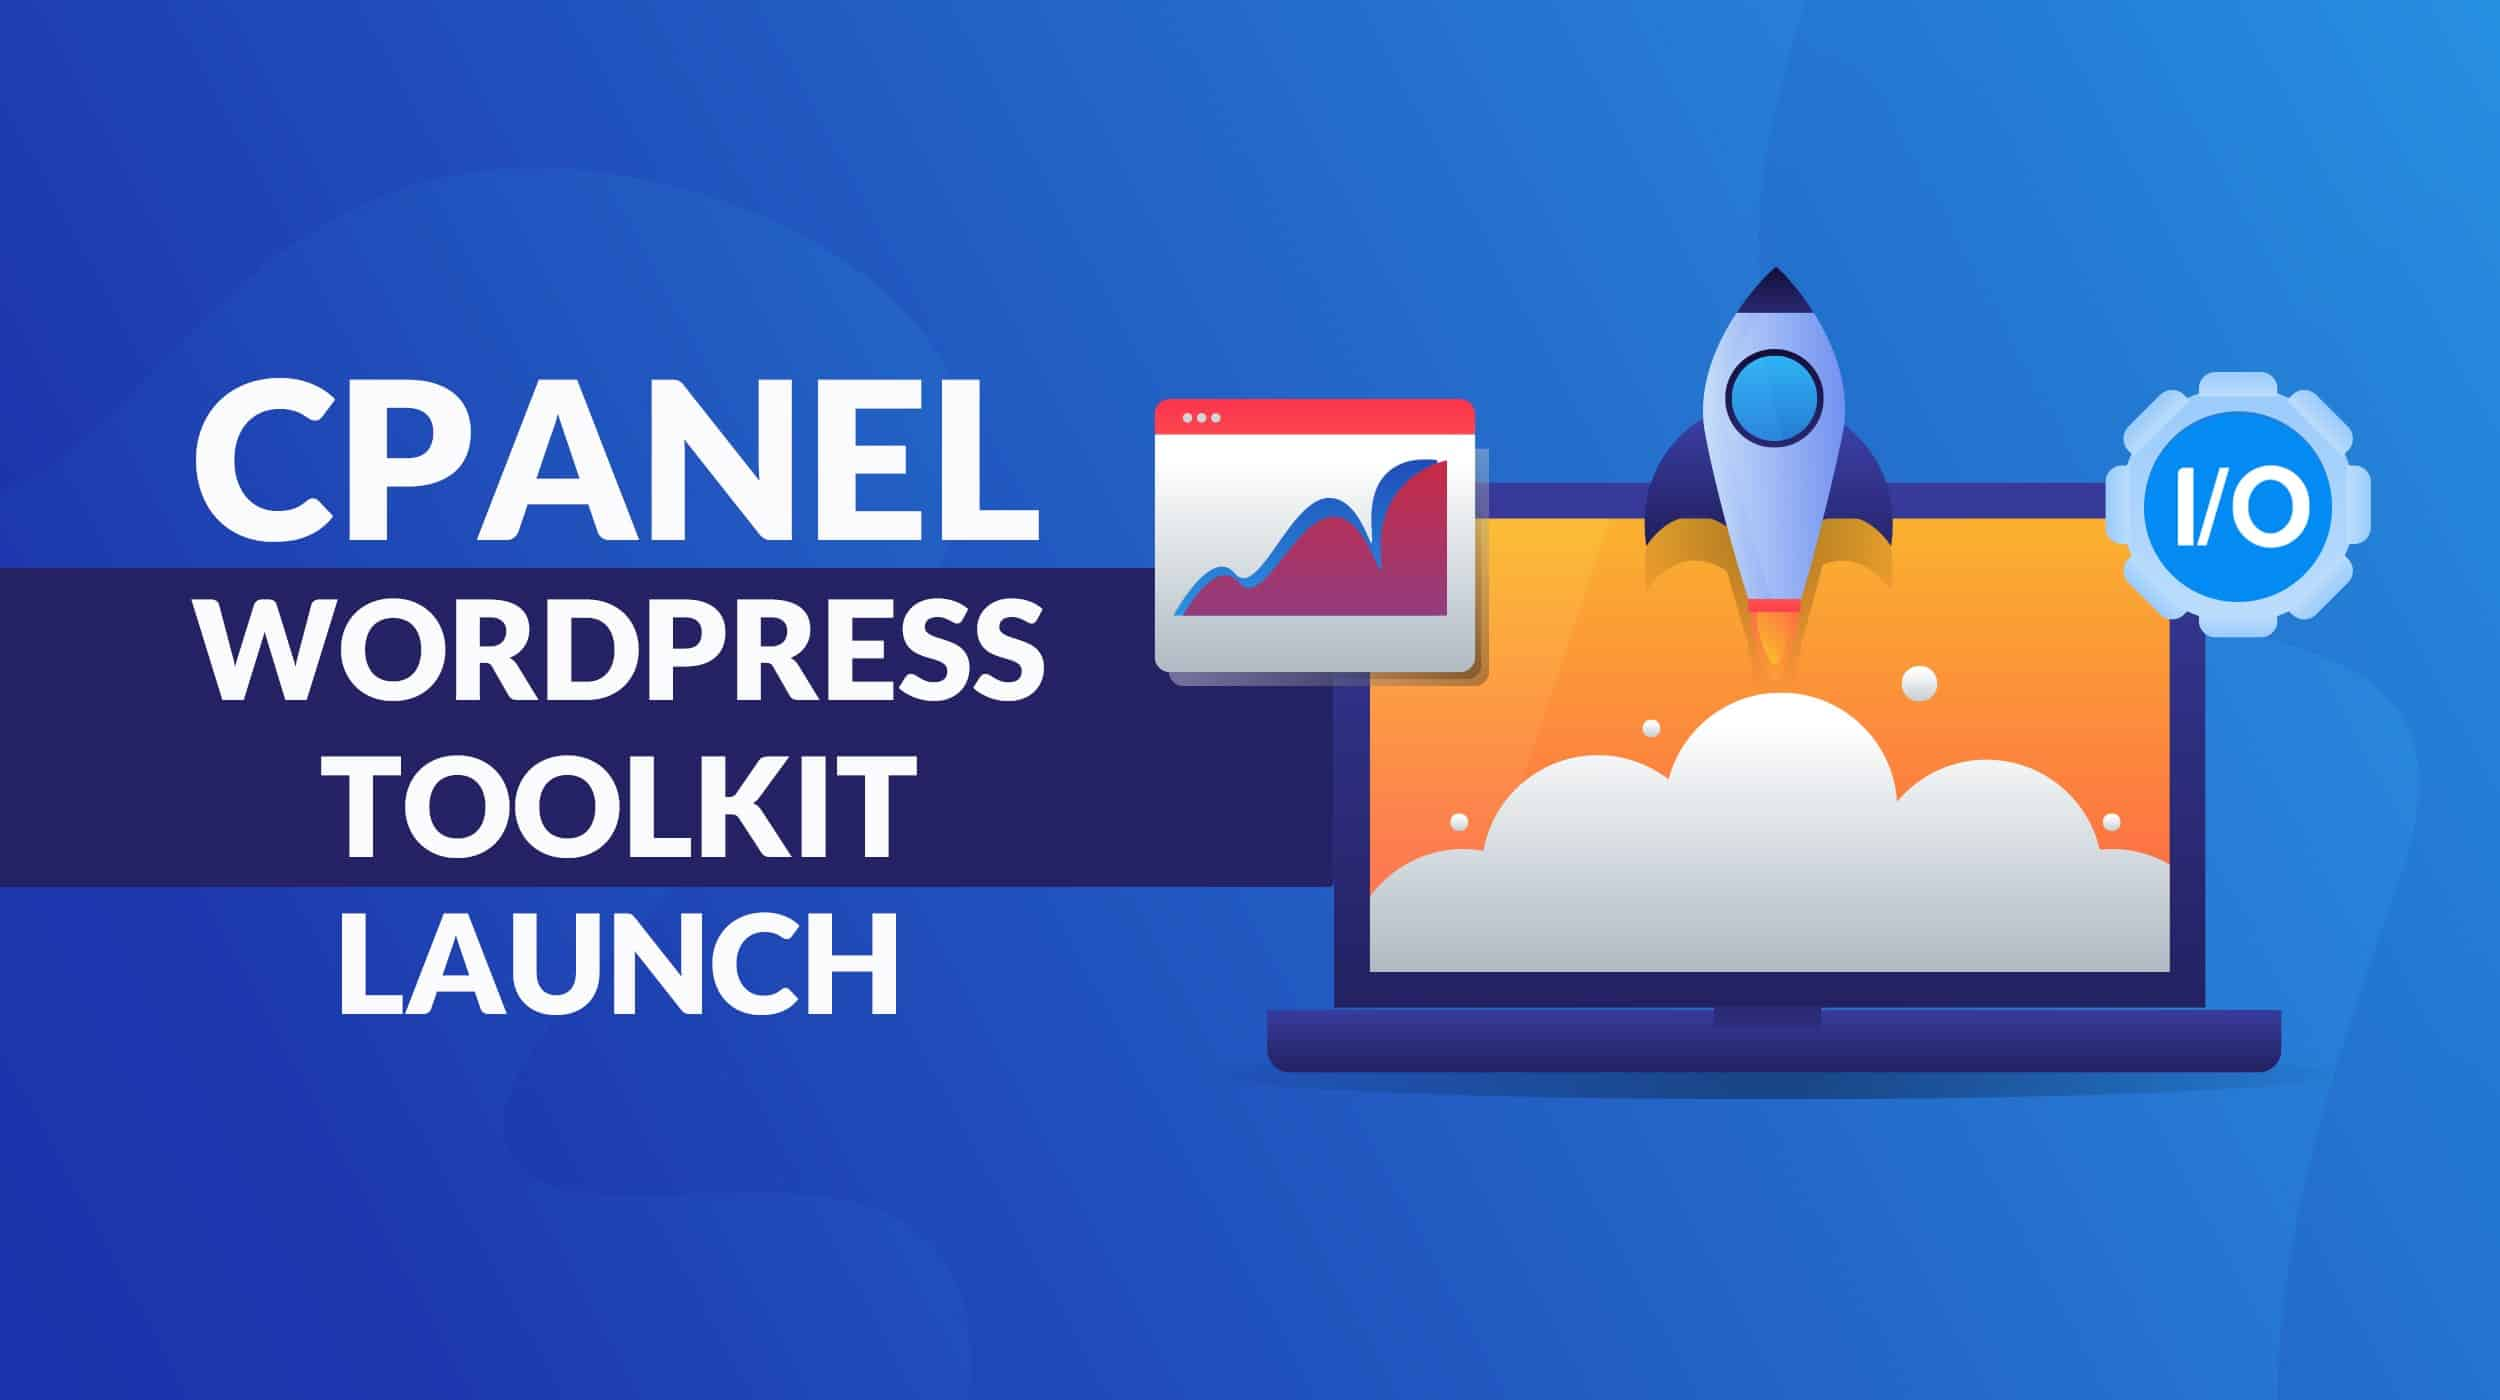 cpanel wordpress toolkiet